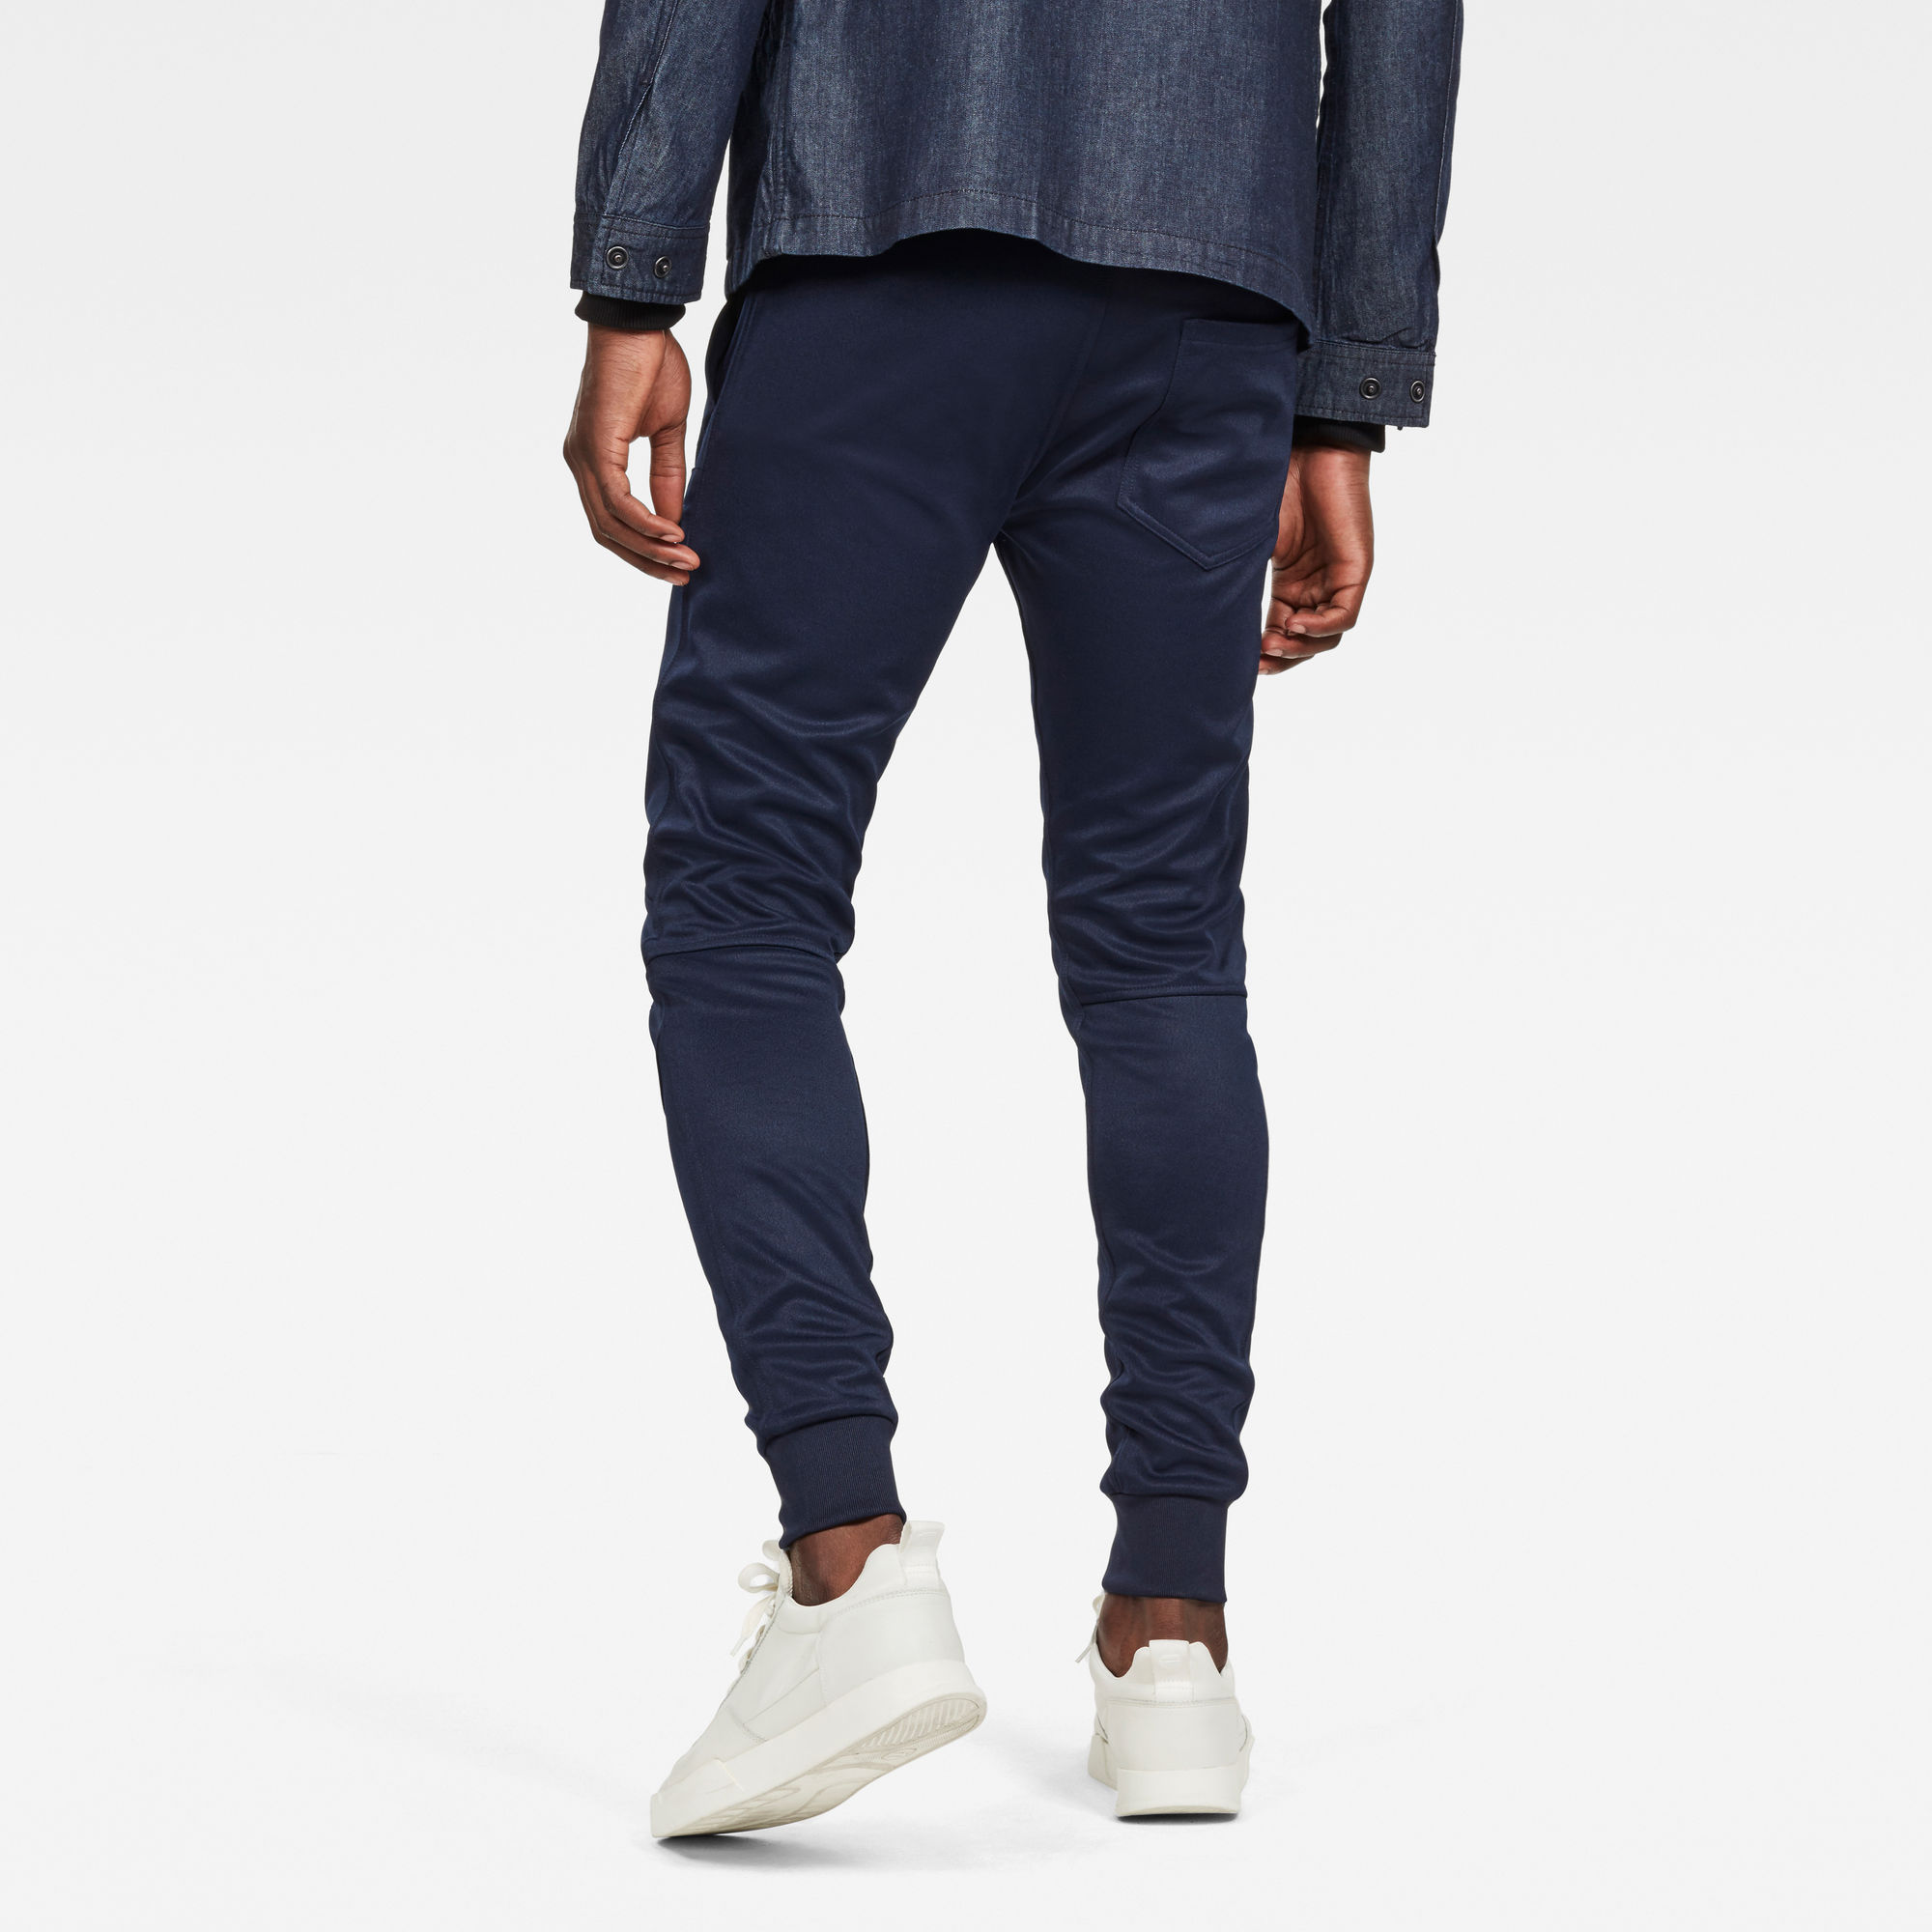 G-Star RAW Air Defence Zip 3D Slim Trainingsbroek